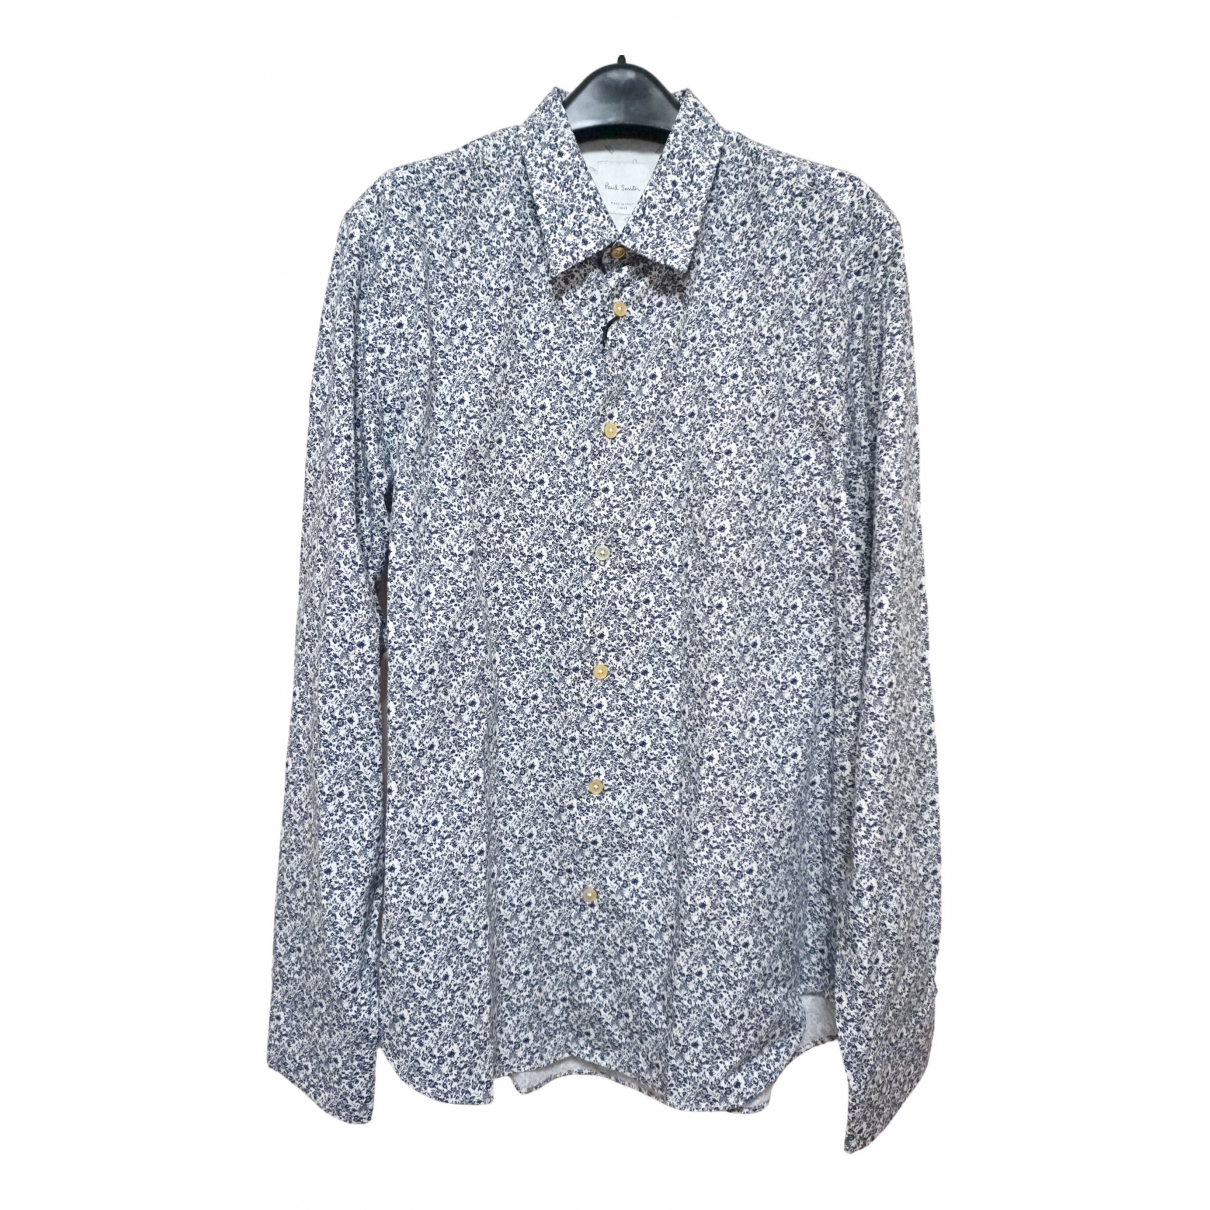 Paul Smith \N Navy Cotton Shirts for Men L International